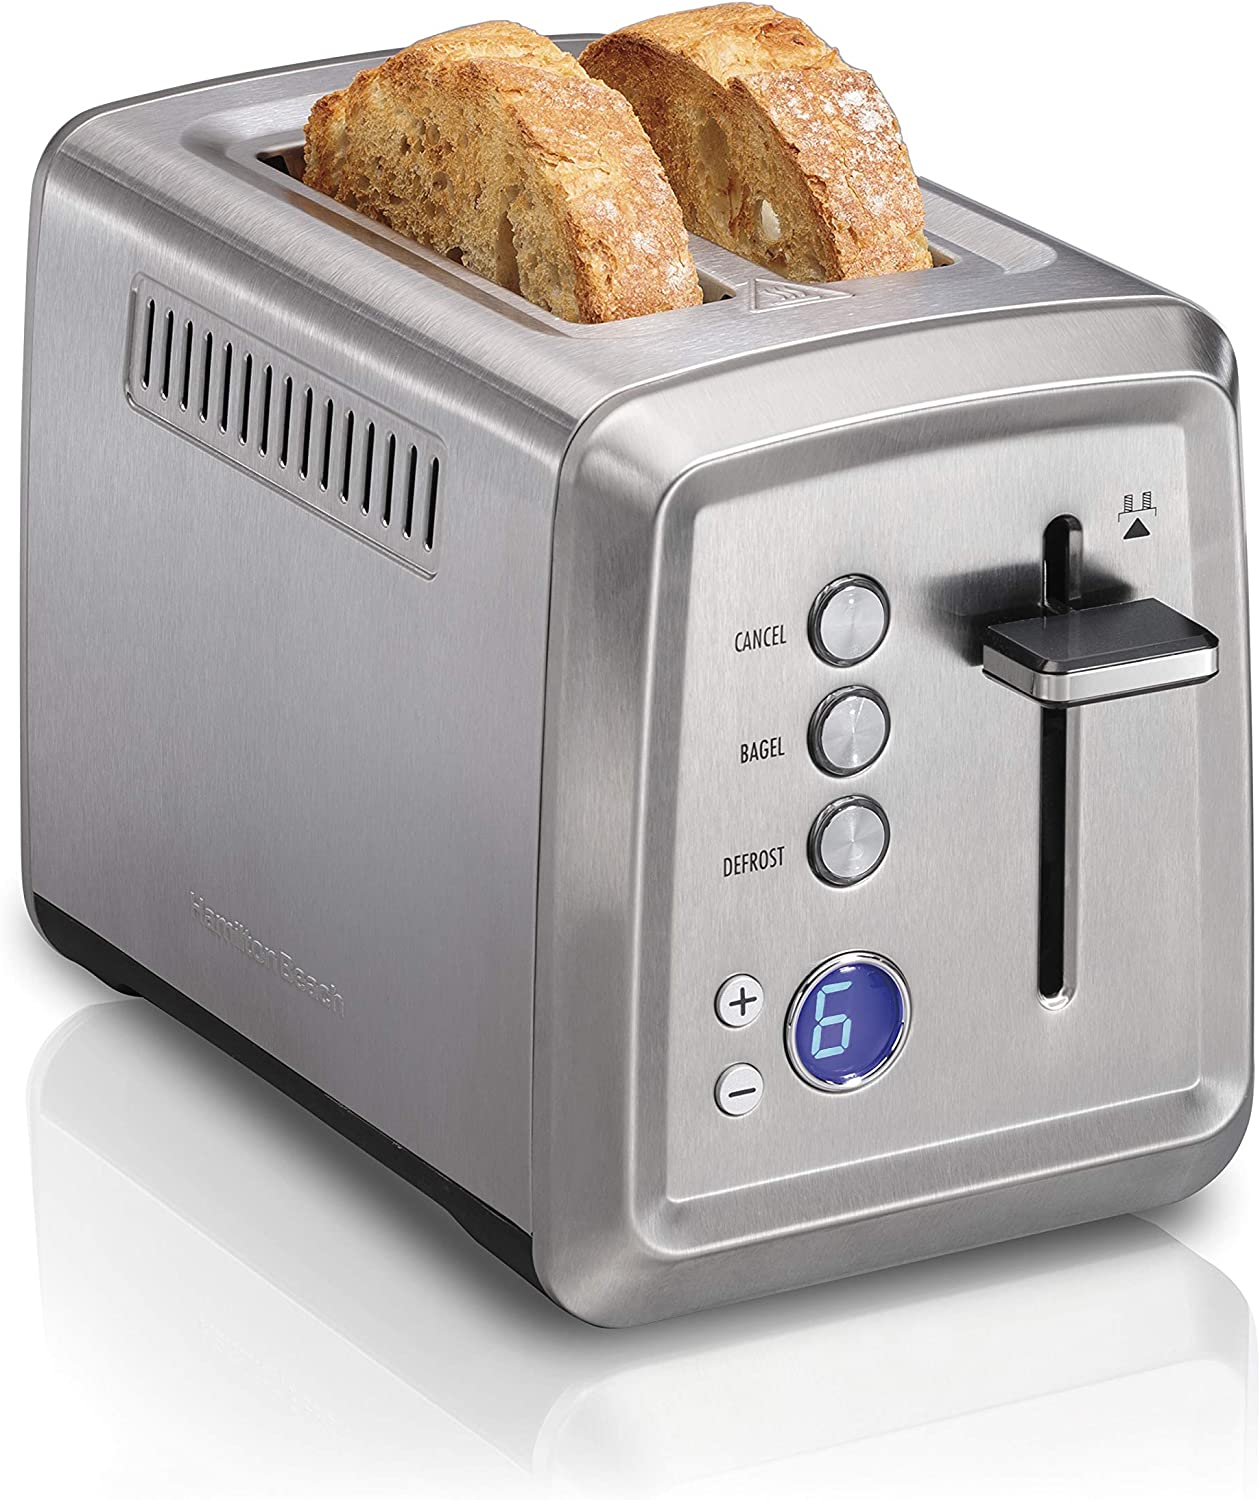 Hamilton Beach Digital 2 Slice Extra-Wide Slot Stainless Steel Toaster with Bagel & Defrost Settings, Toast Boost, Slide-Out Crumb Tray, Auto-Shutoff and Cancel Button (22796)